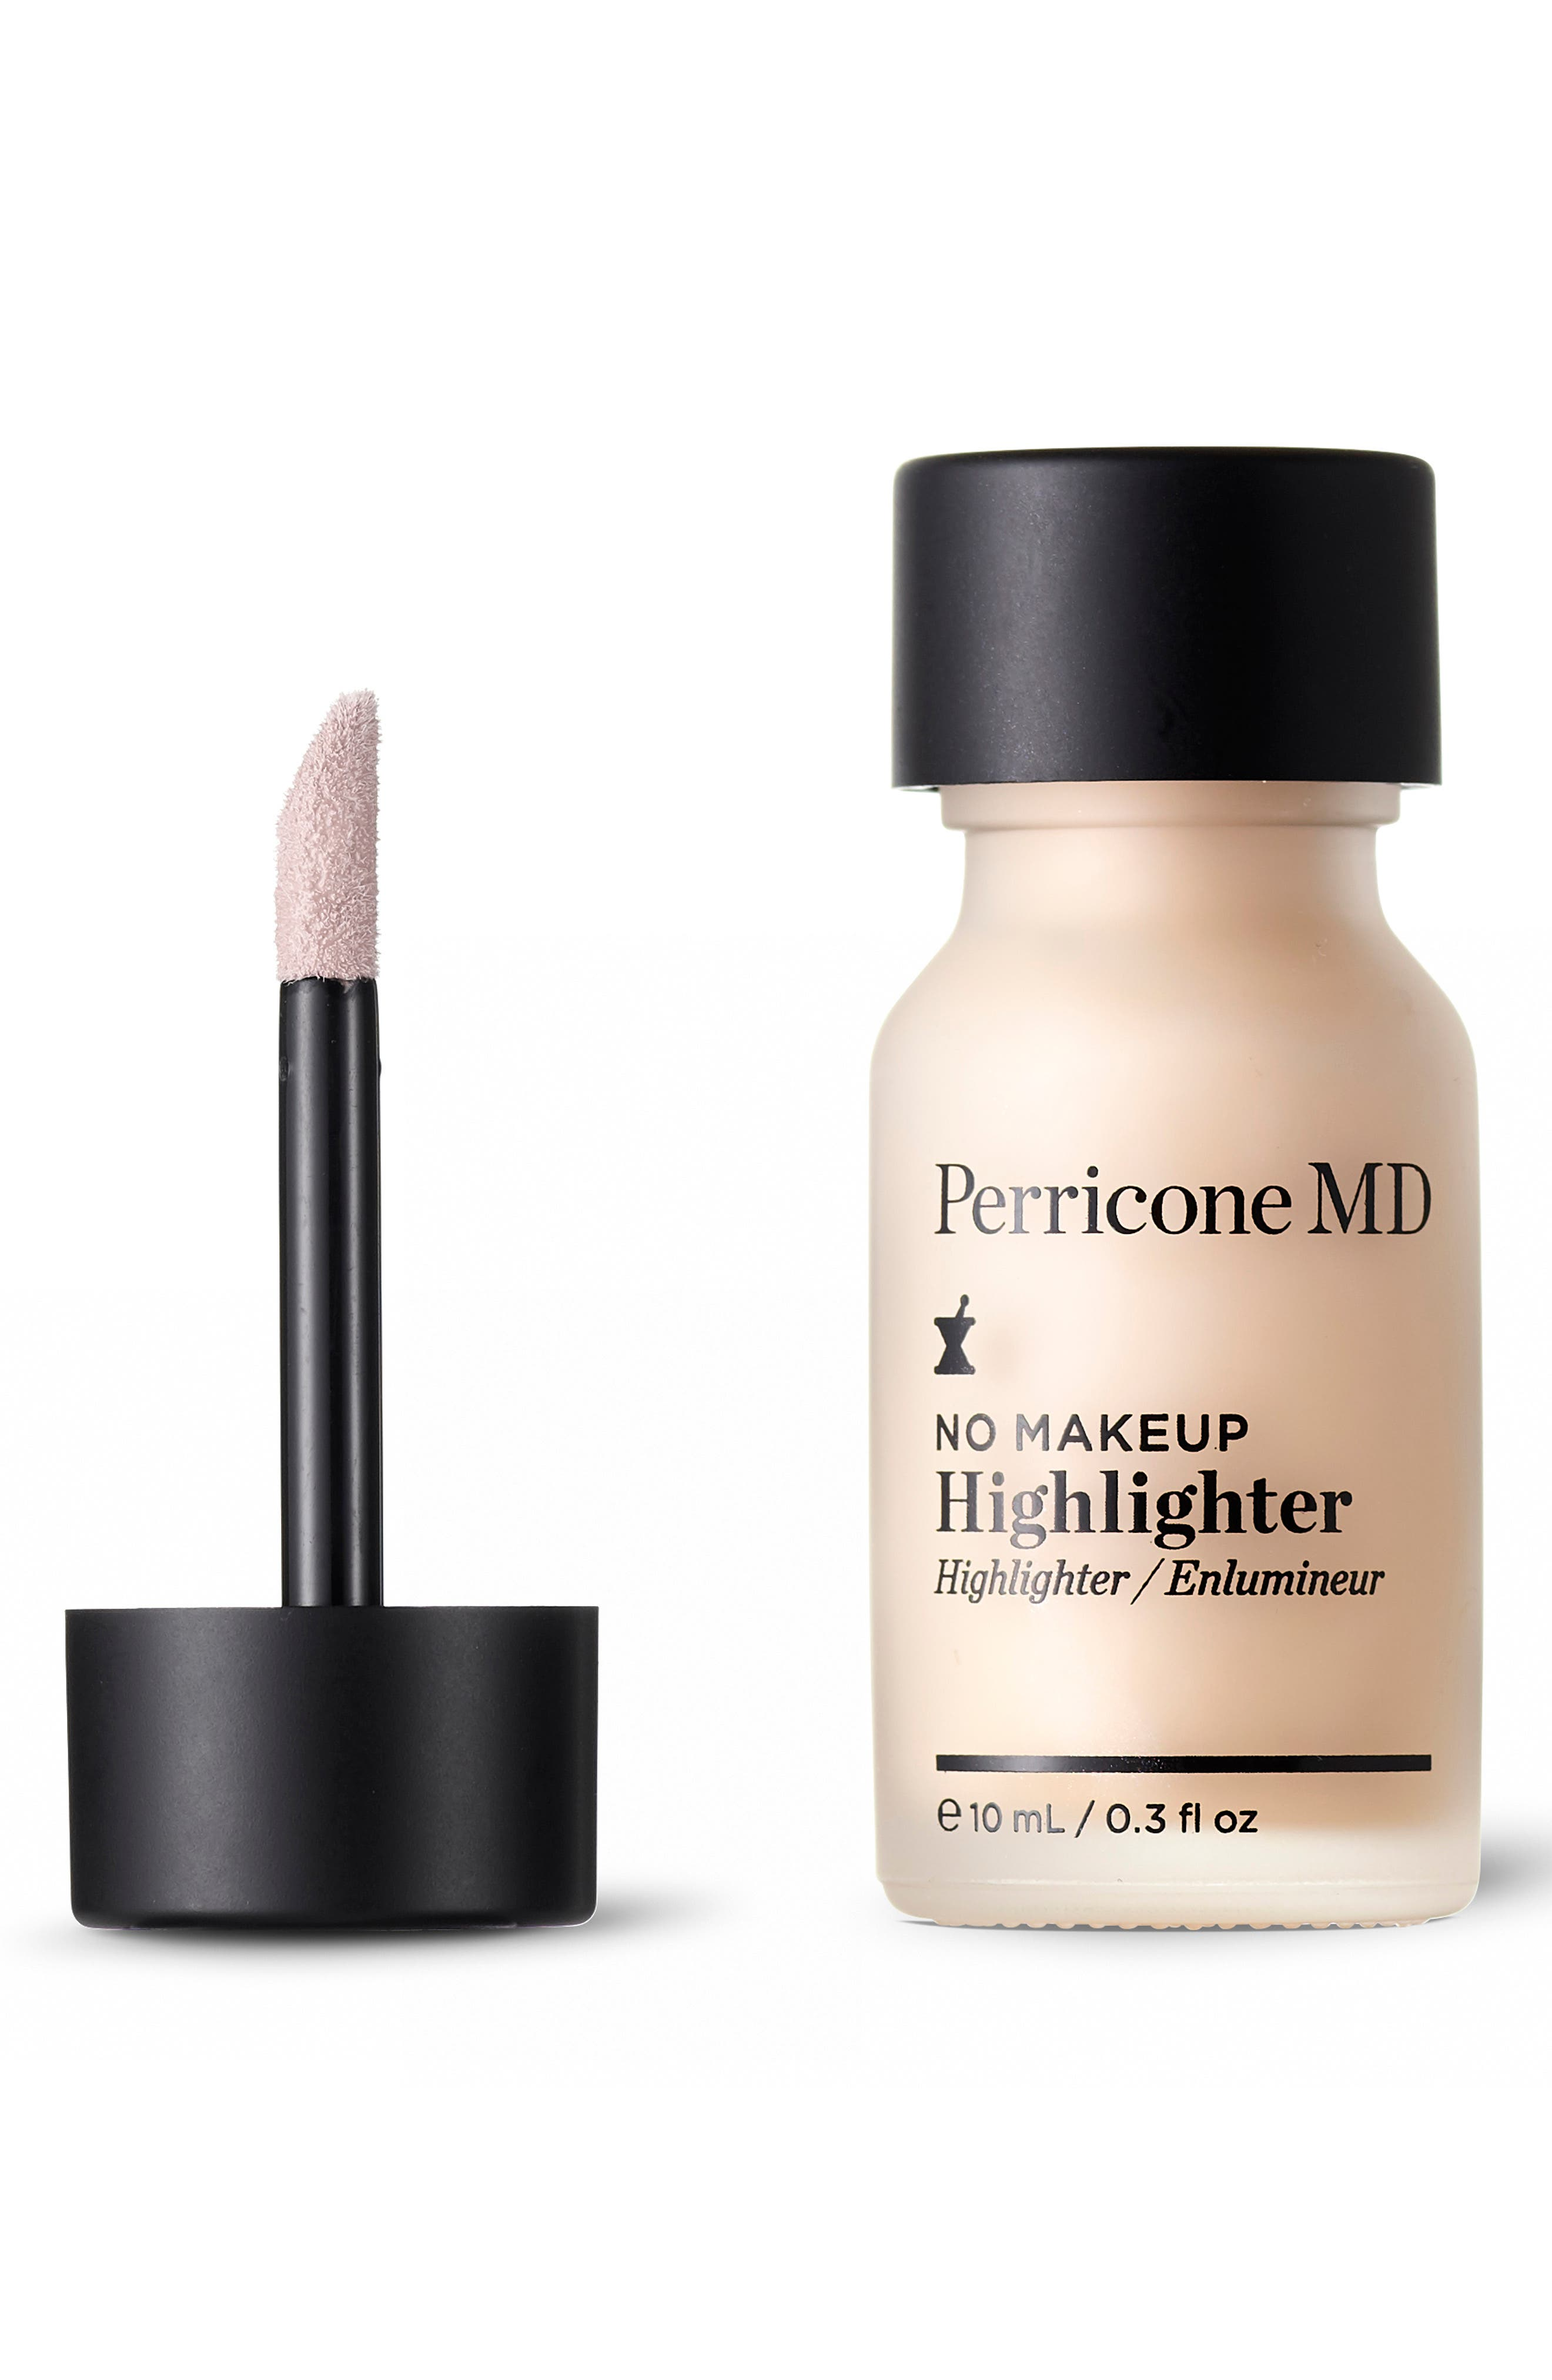 PERRICONE MD, No Makeup Highlighter, Alternate thumbnail 2, color, 000